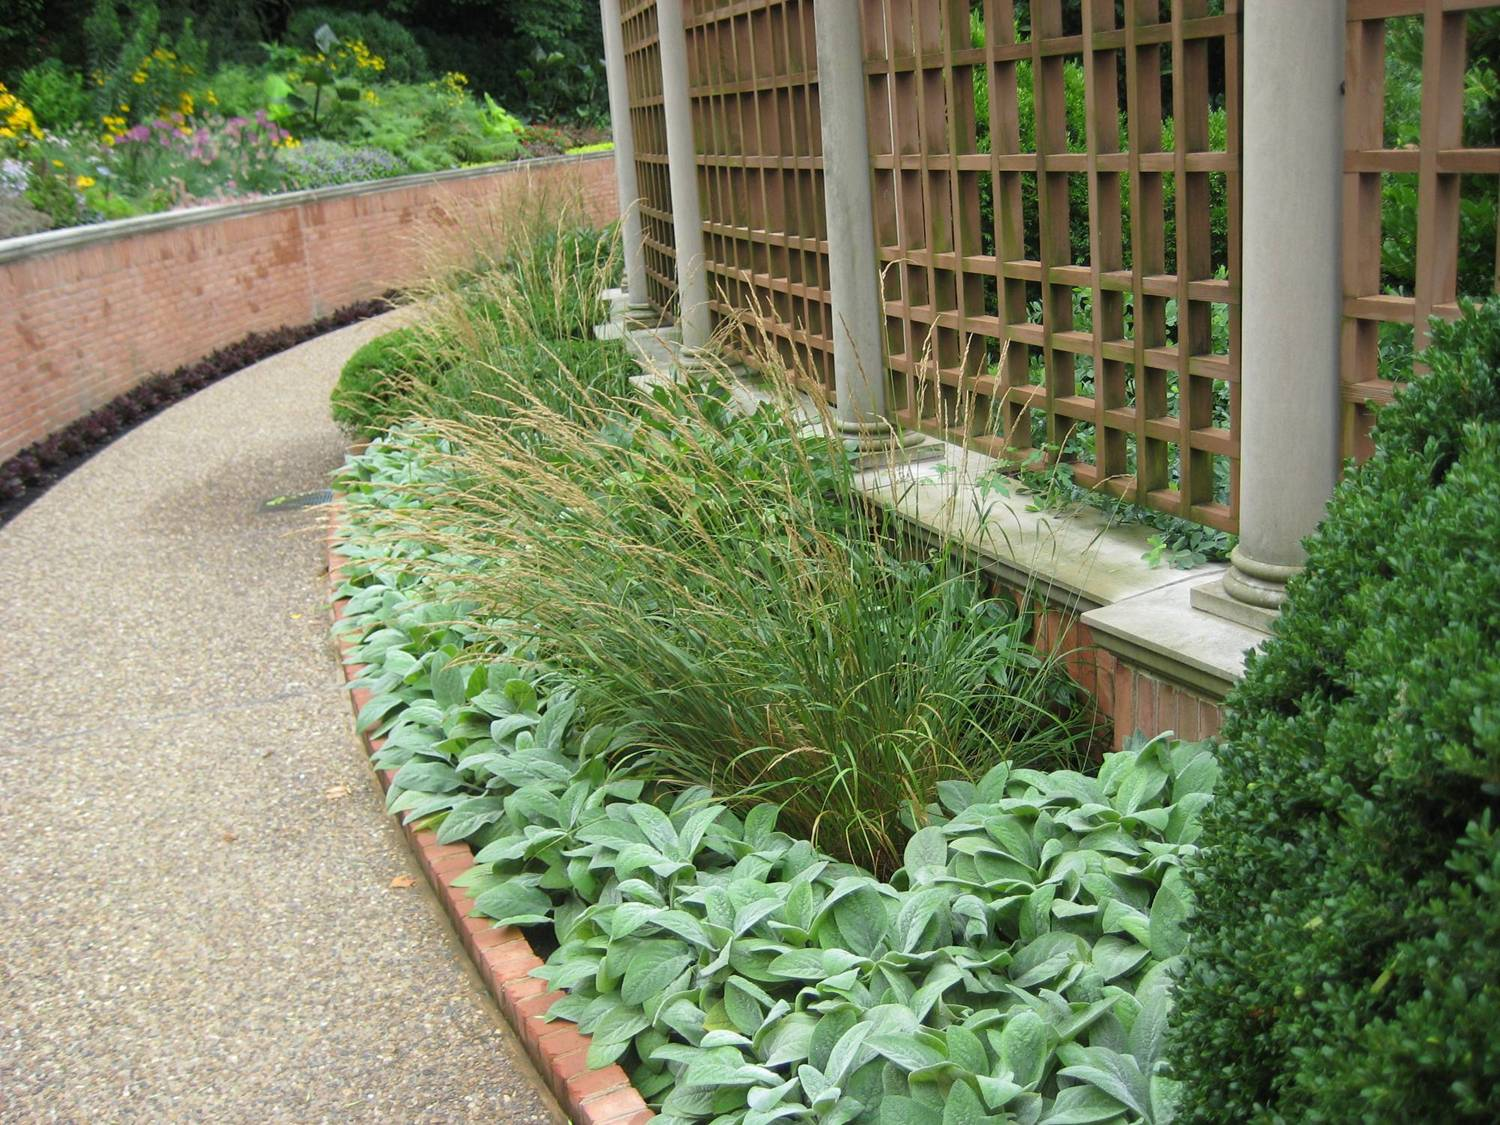 basic design principles and styles for garden beds - Planting Beds Design Ideas